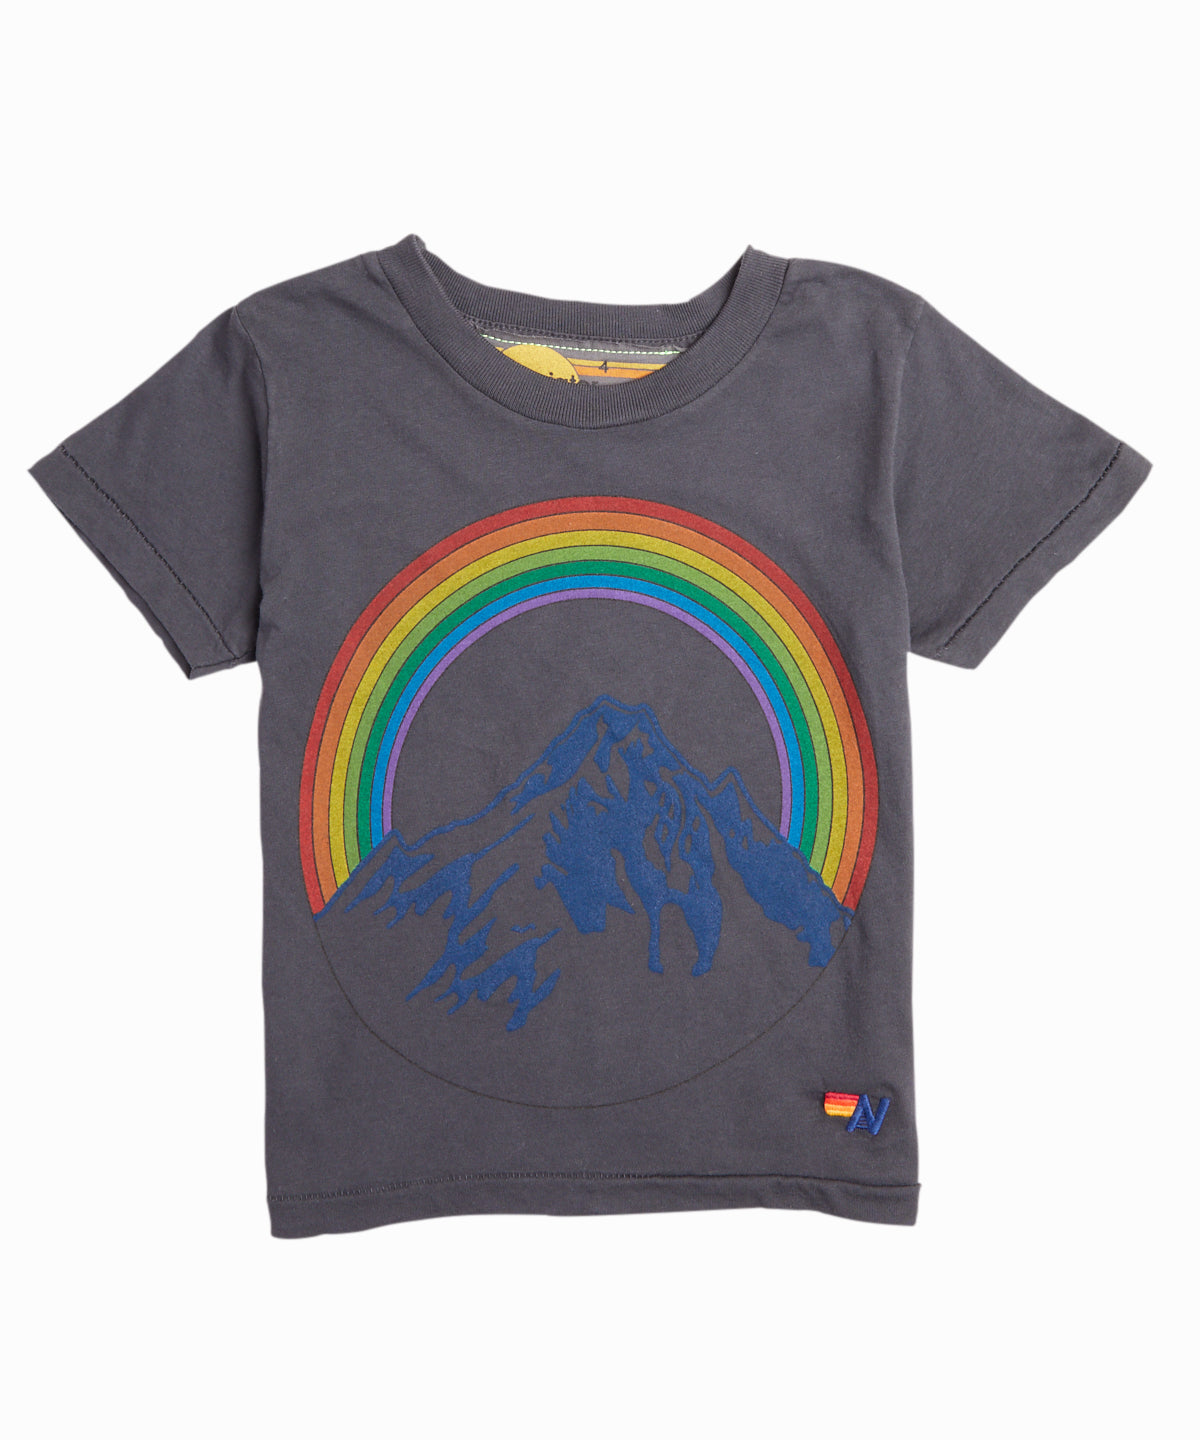 Rainbow Mountain Tee